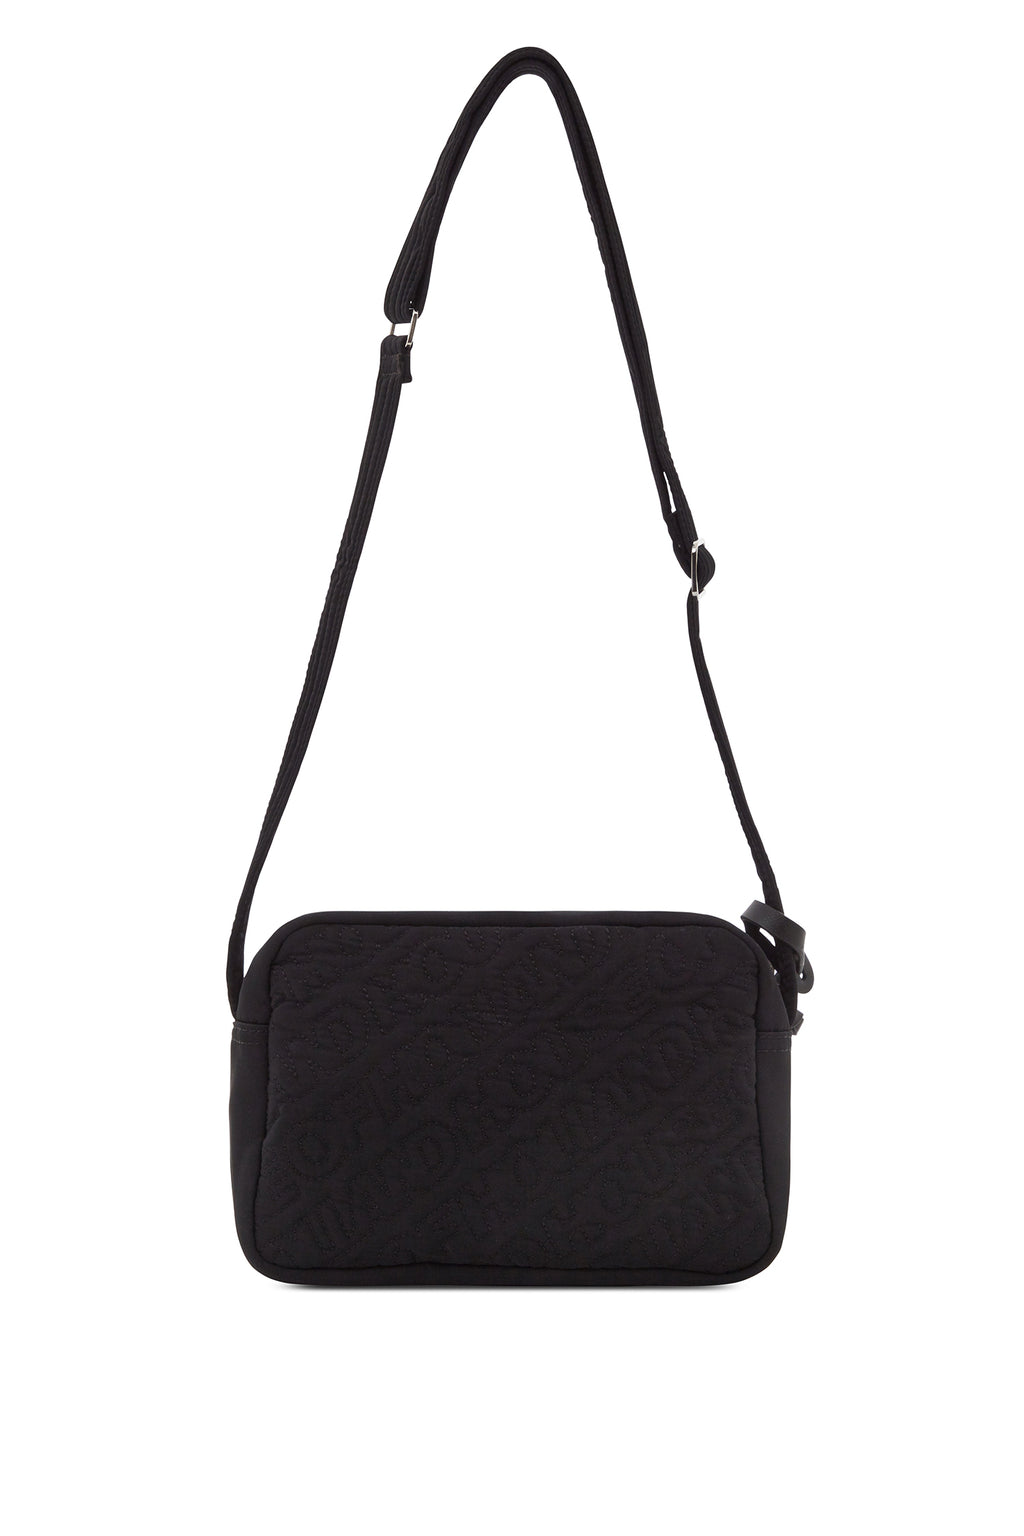 'HOH' Black Embroidered Cross Body